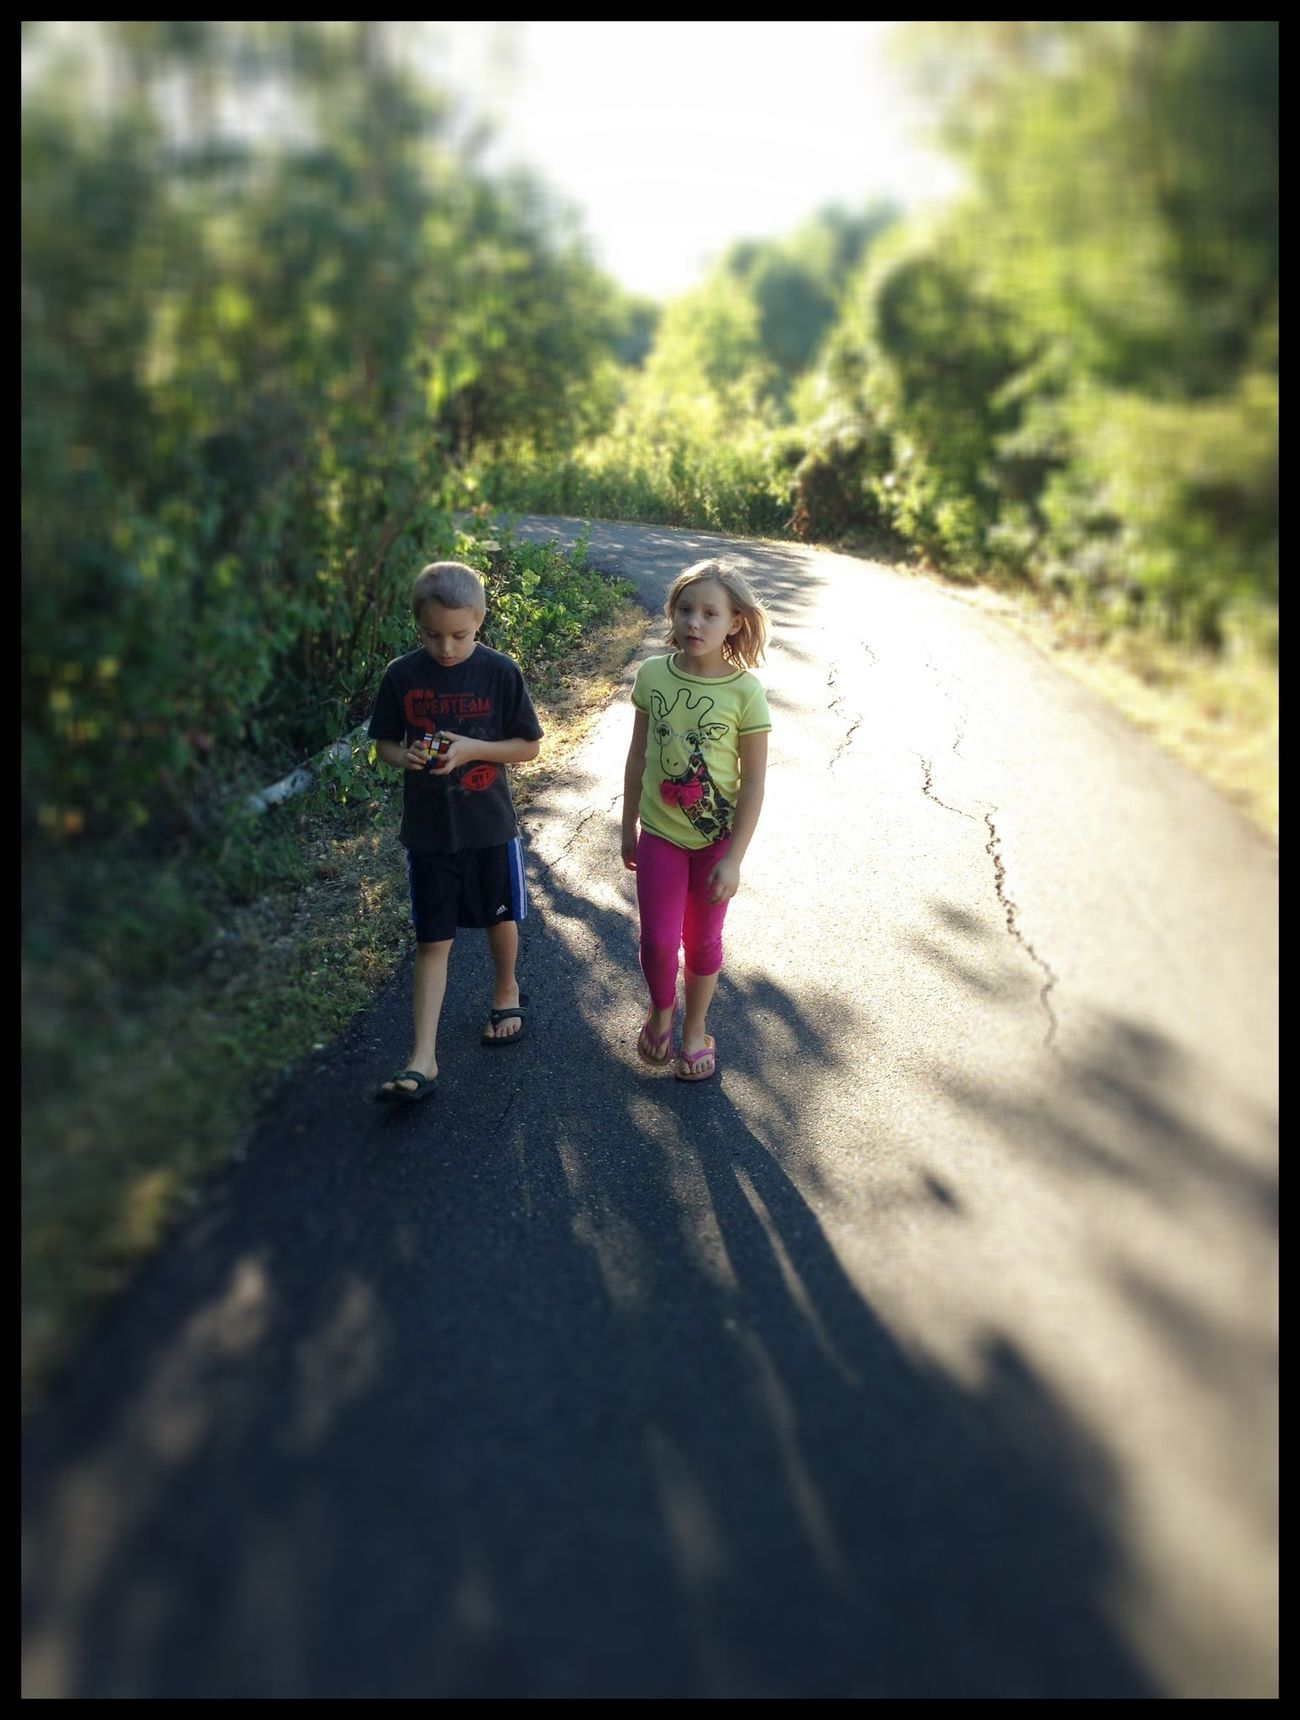 Walking Around Kids IPhoneography